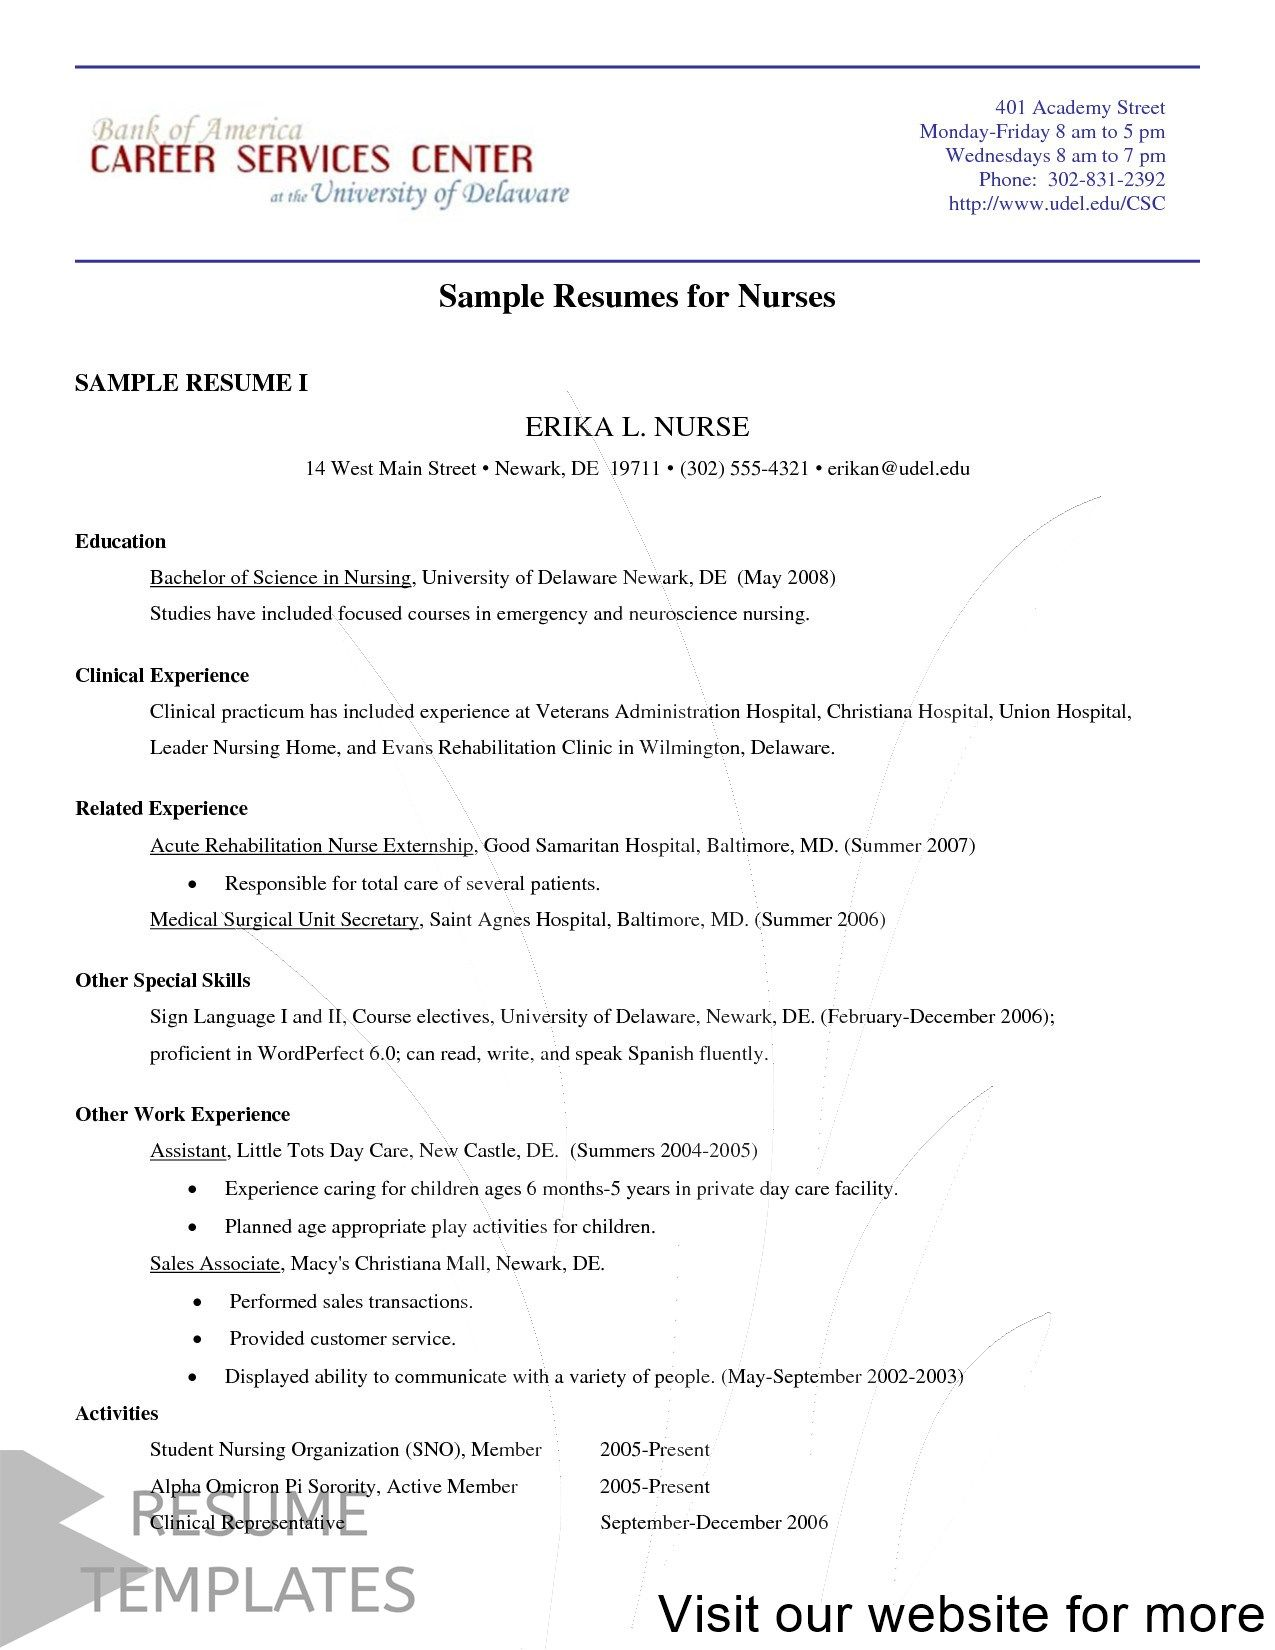 resume template pdf Best in 2020 Resume writing services